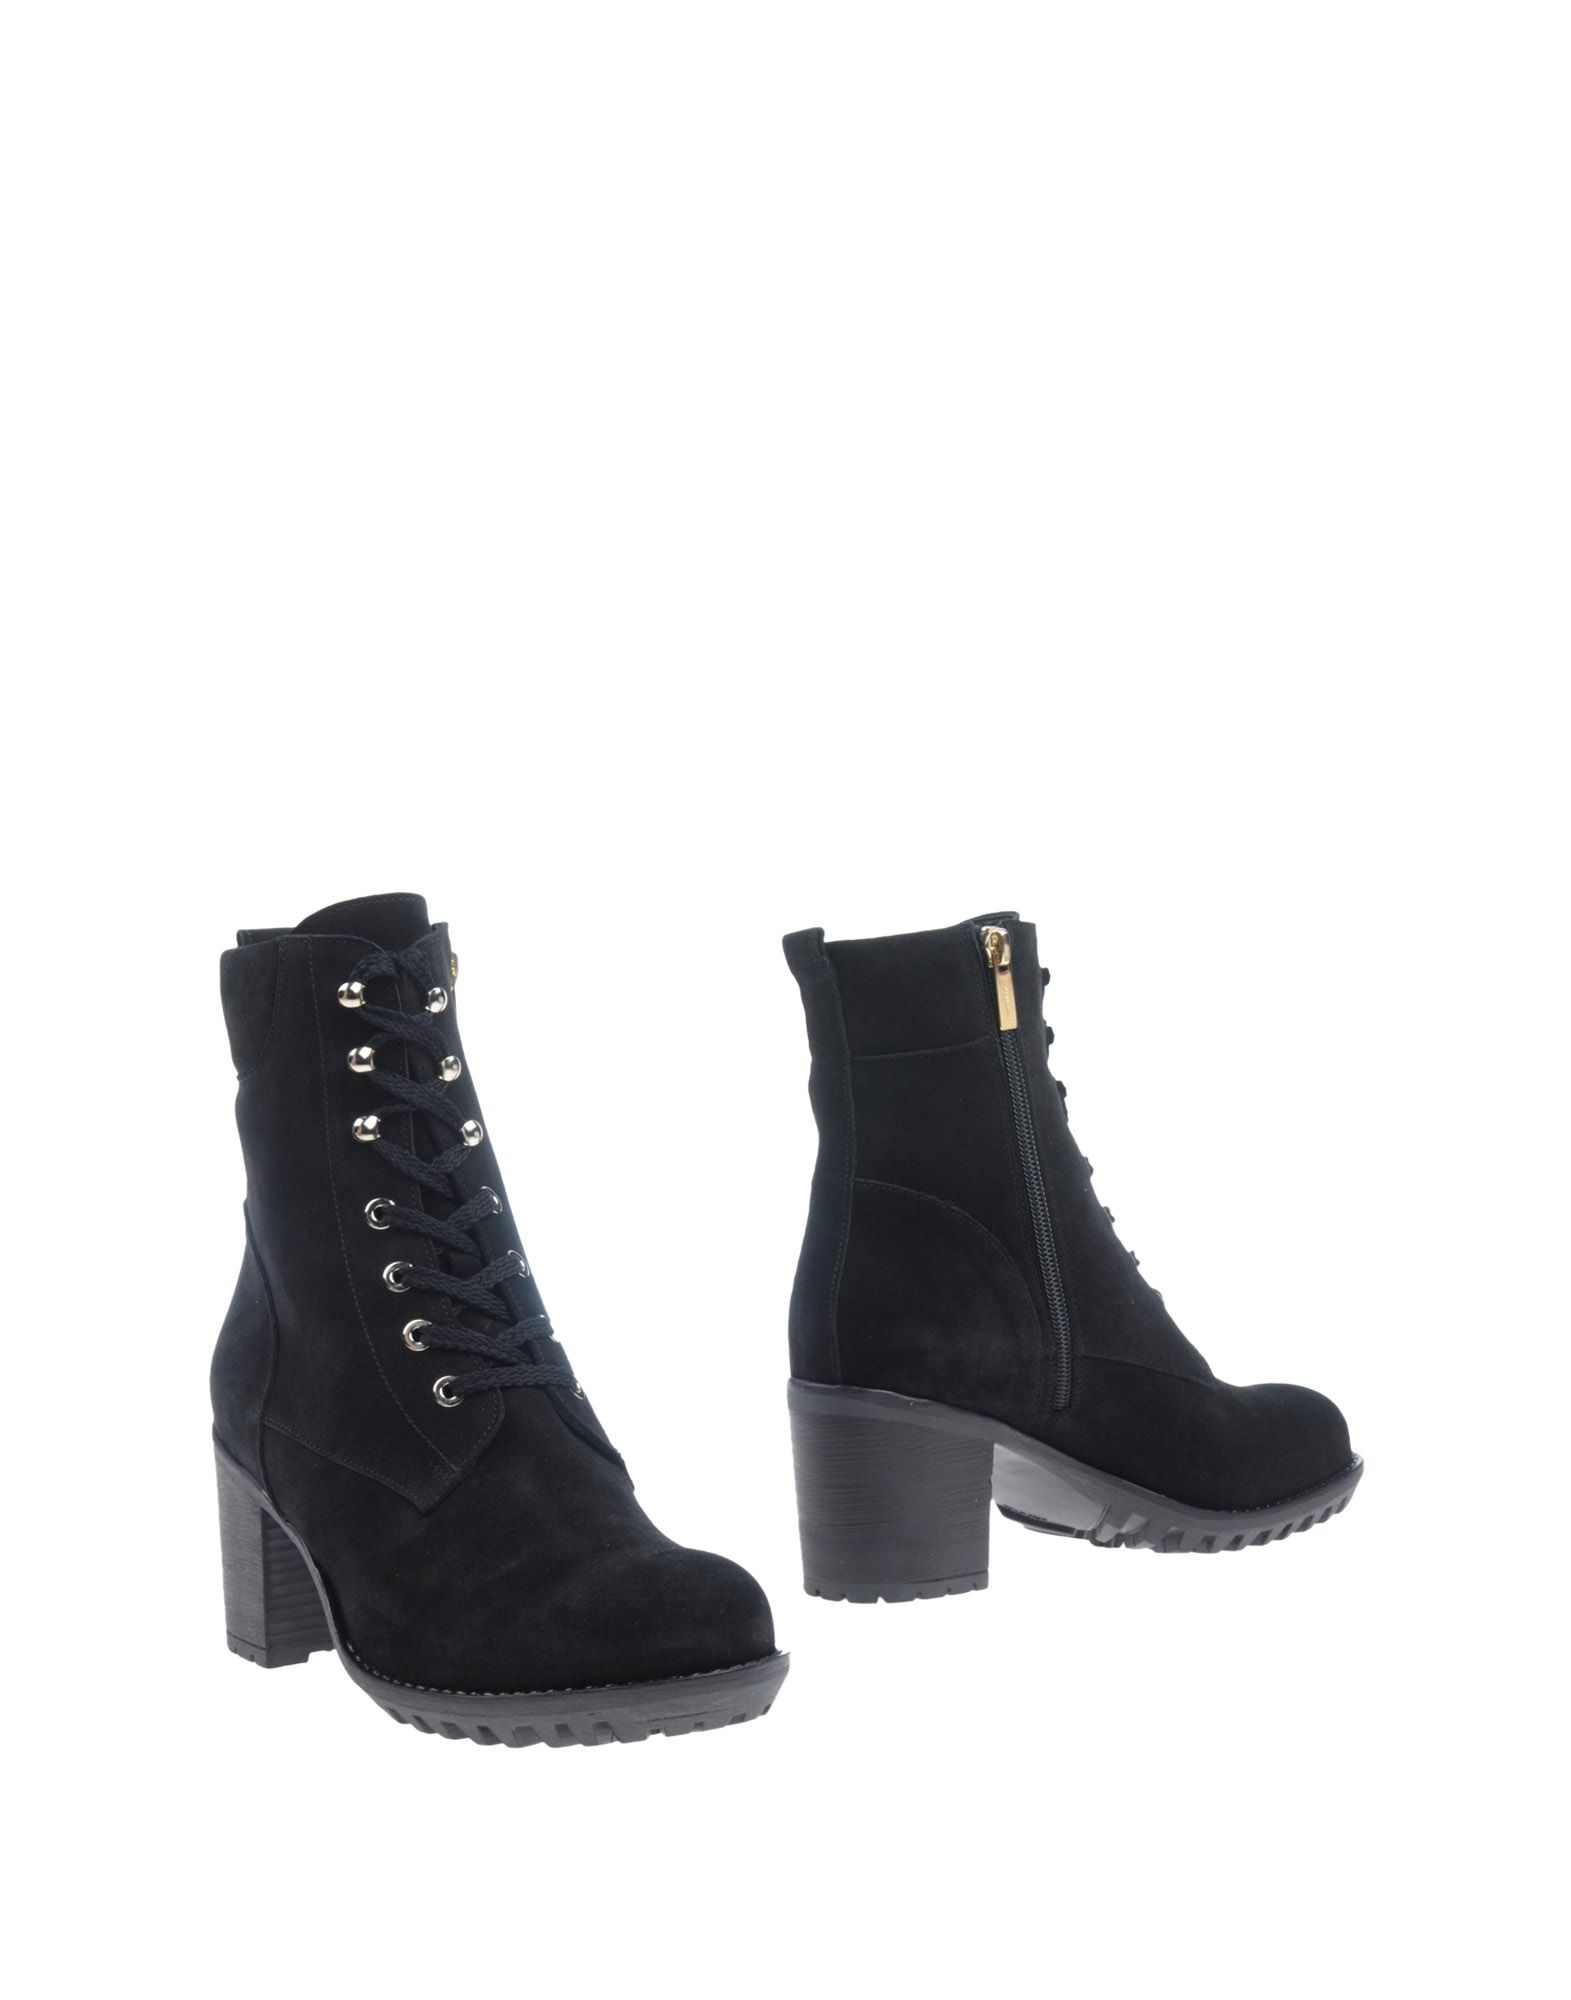 Bottine Fiorangelo Femme - Bottines Fiorangelo sur